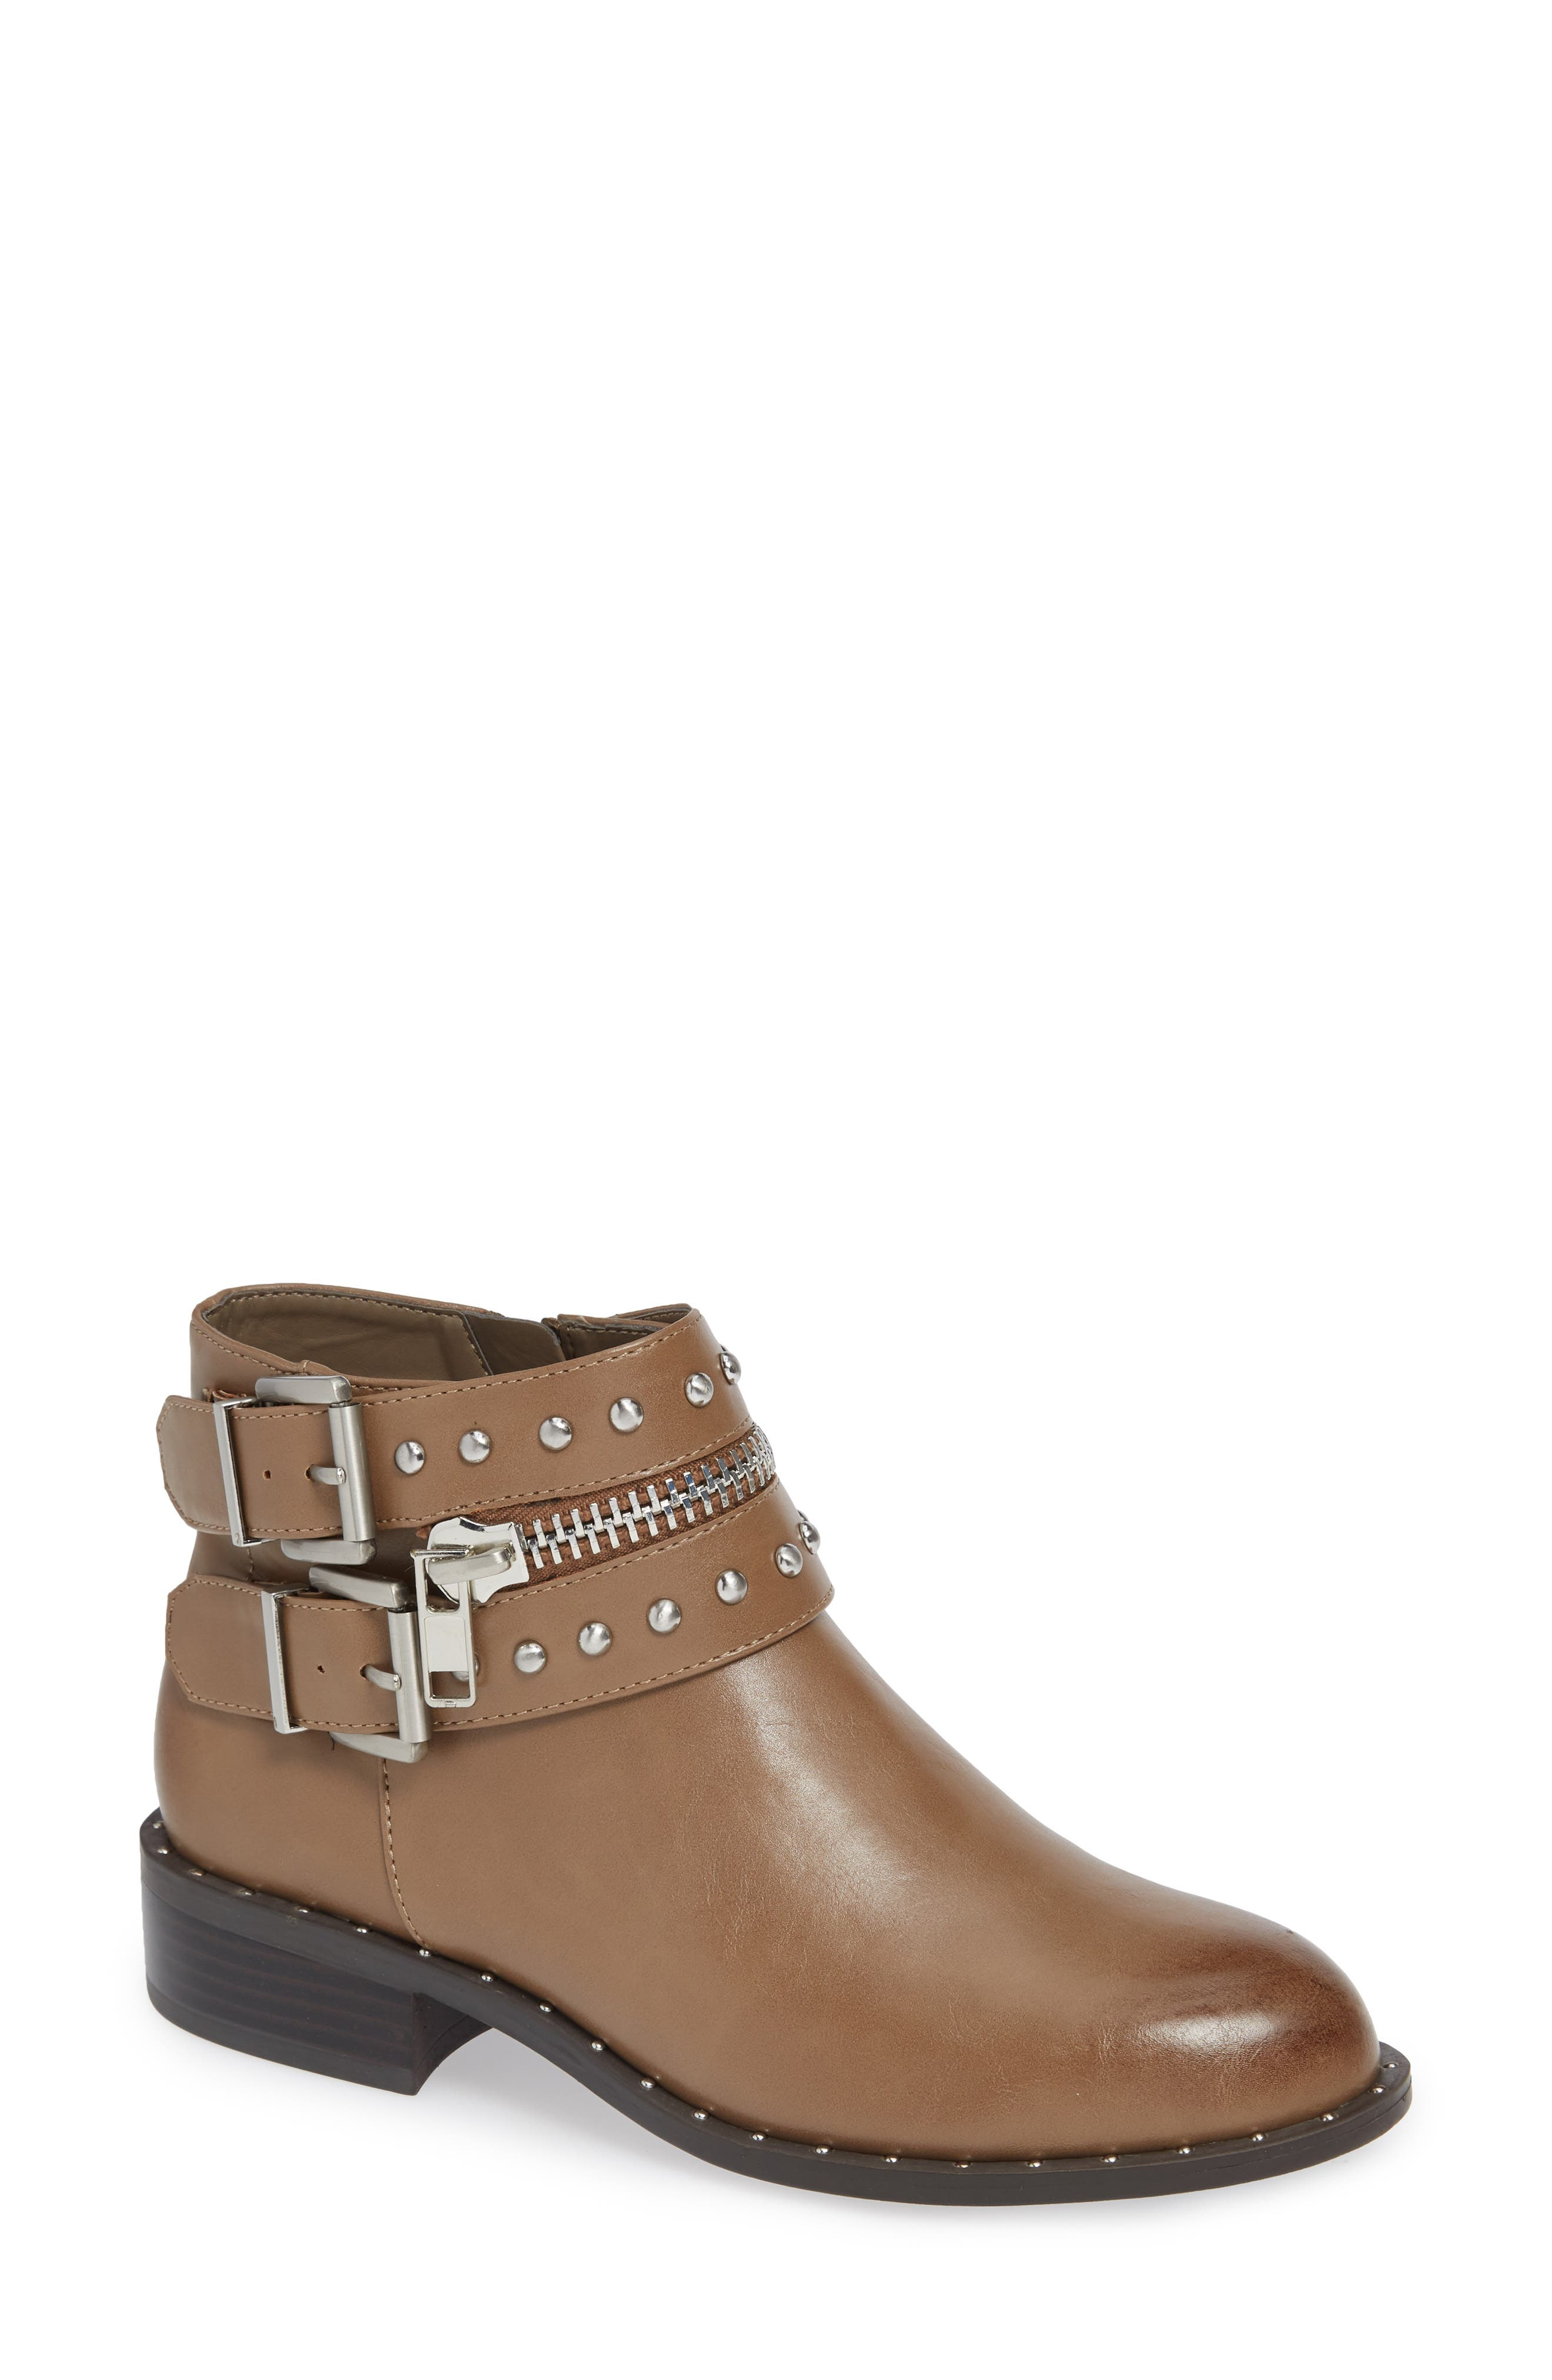 CHARLES BY CHARLES DAVID, Thief Studded Bootie, Main thumbnail 1, color, TAUPE SYNTHETIC